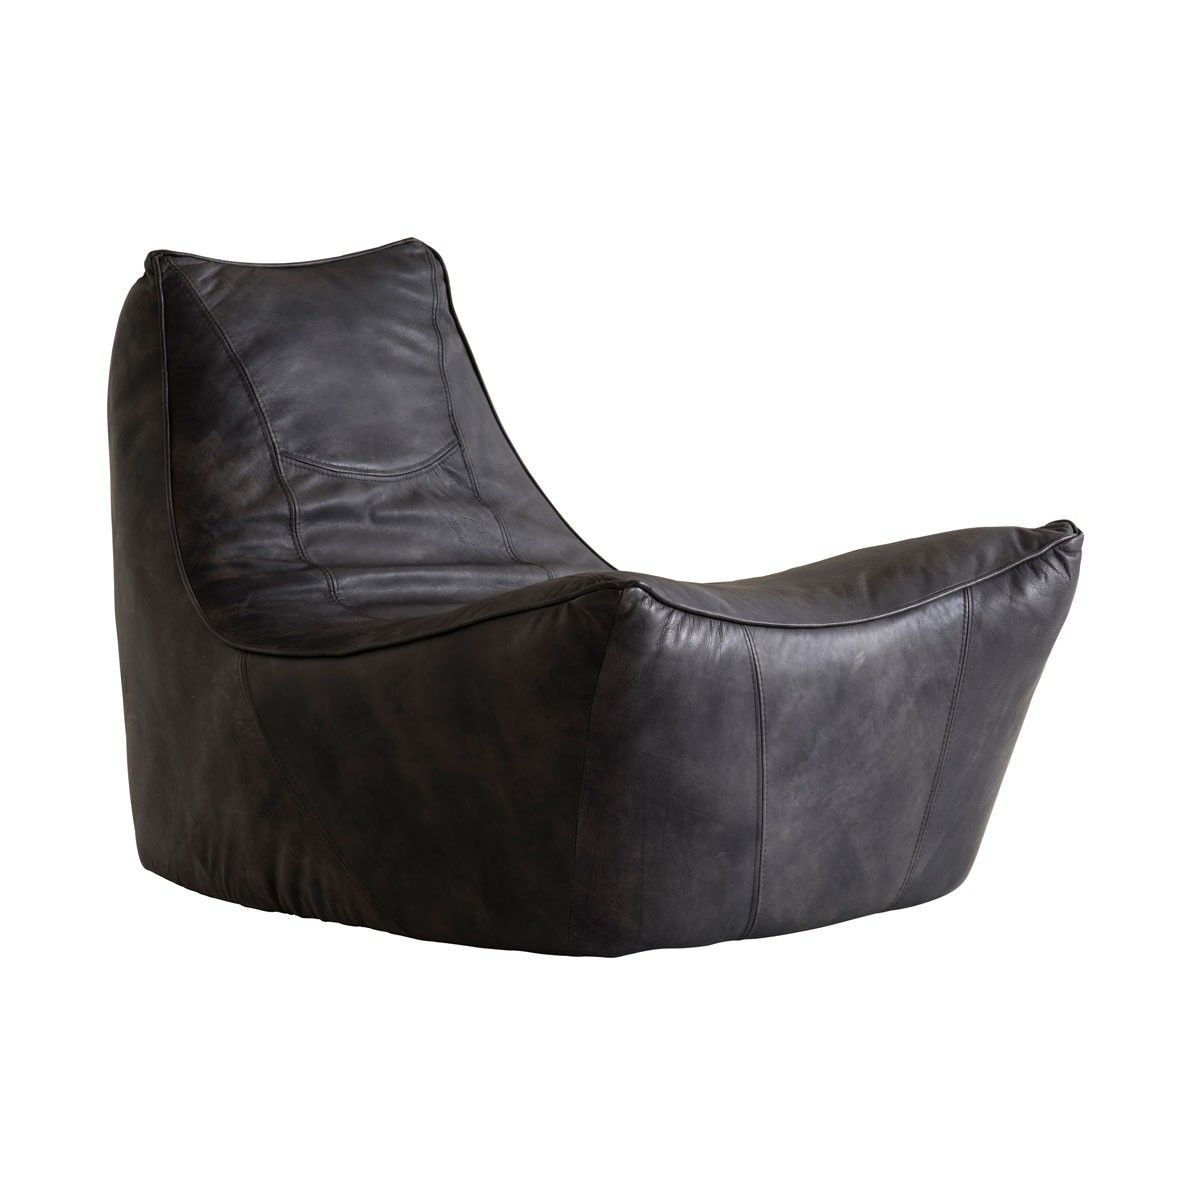 Dune Chair Angle | FURNITURE | Pinterest | Dune, Leather lounge and ...